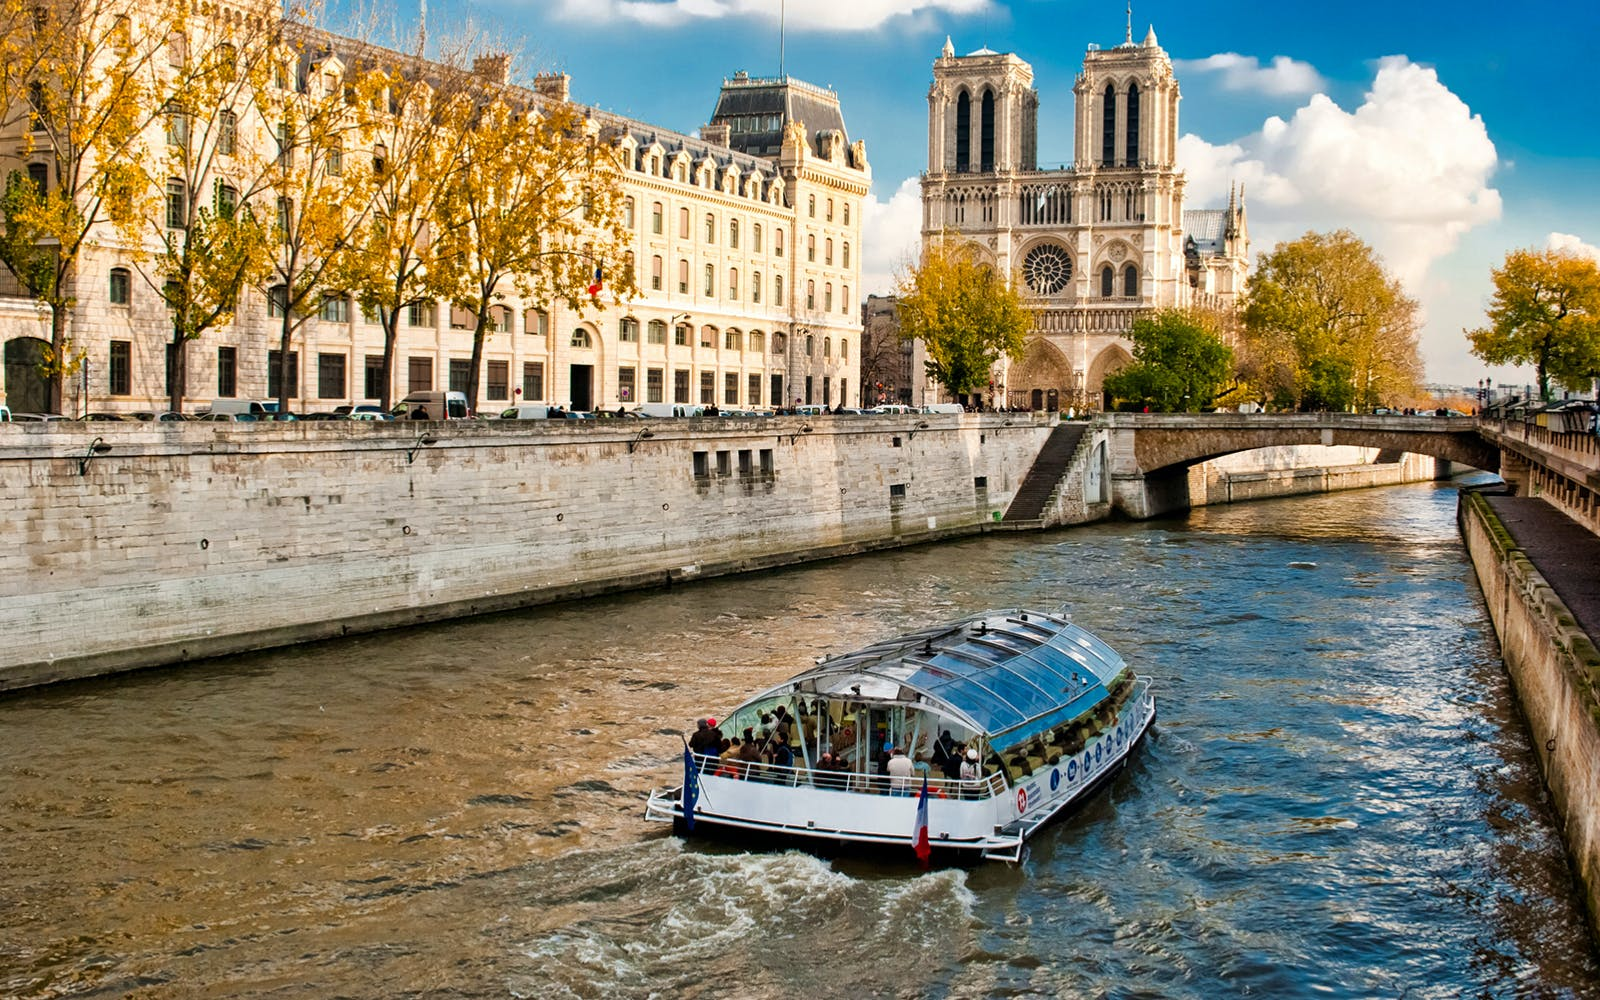 bateaux mouches: seine river sightseeing cruise with live commentary-3